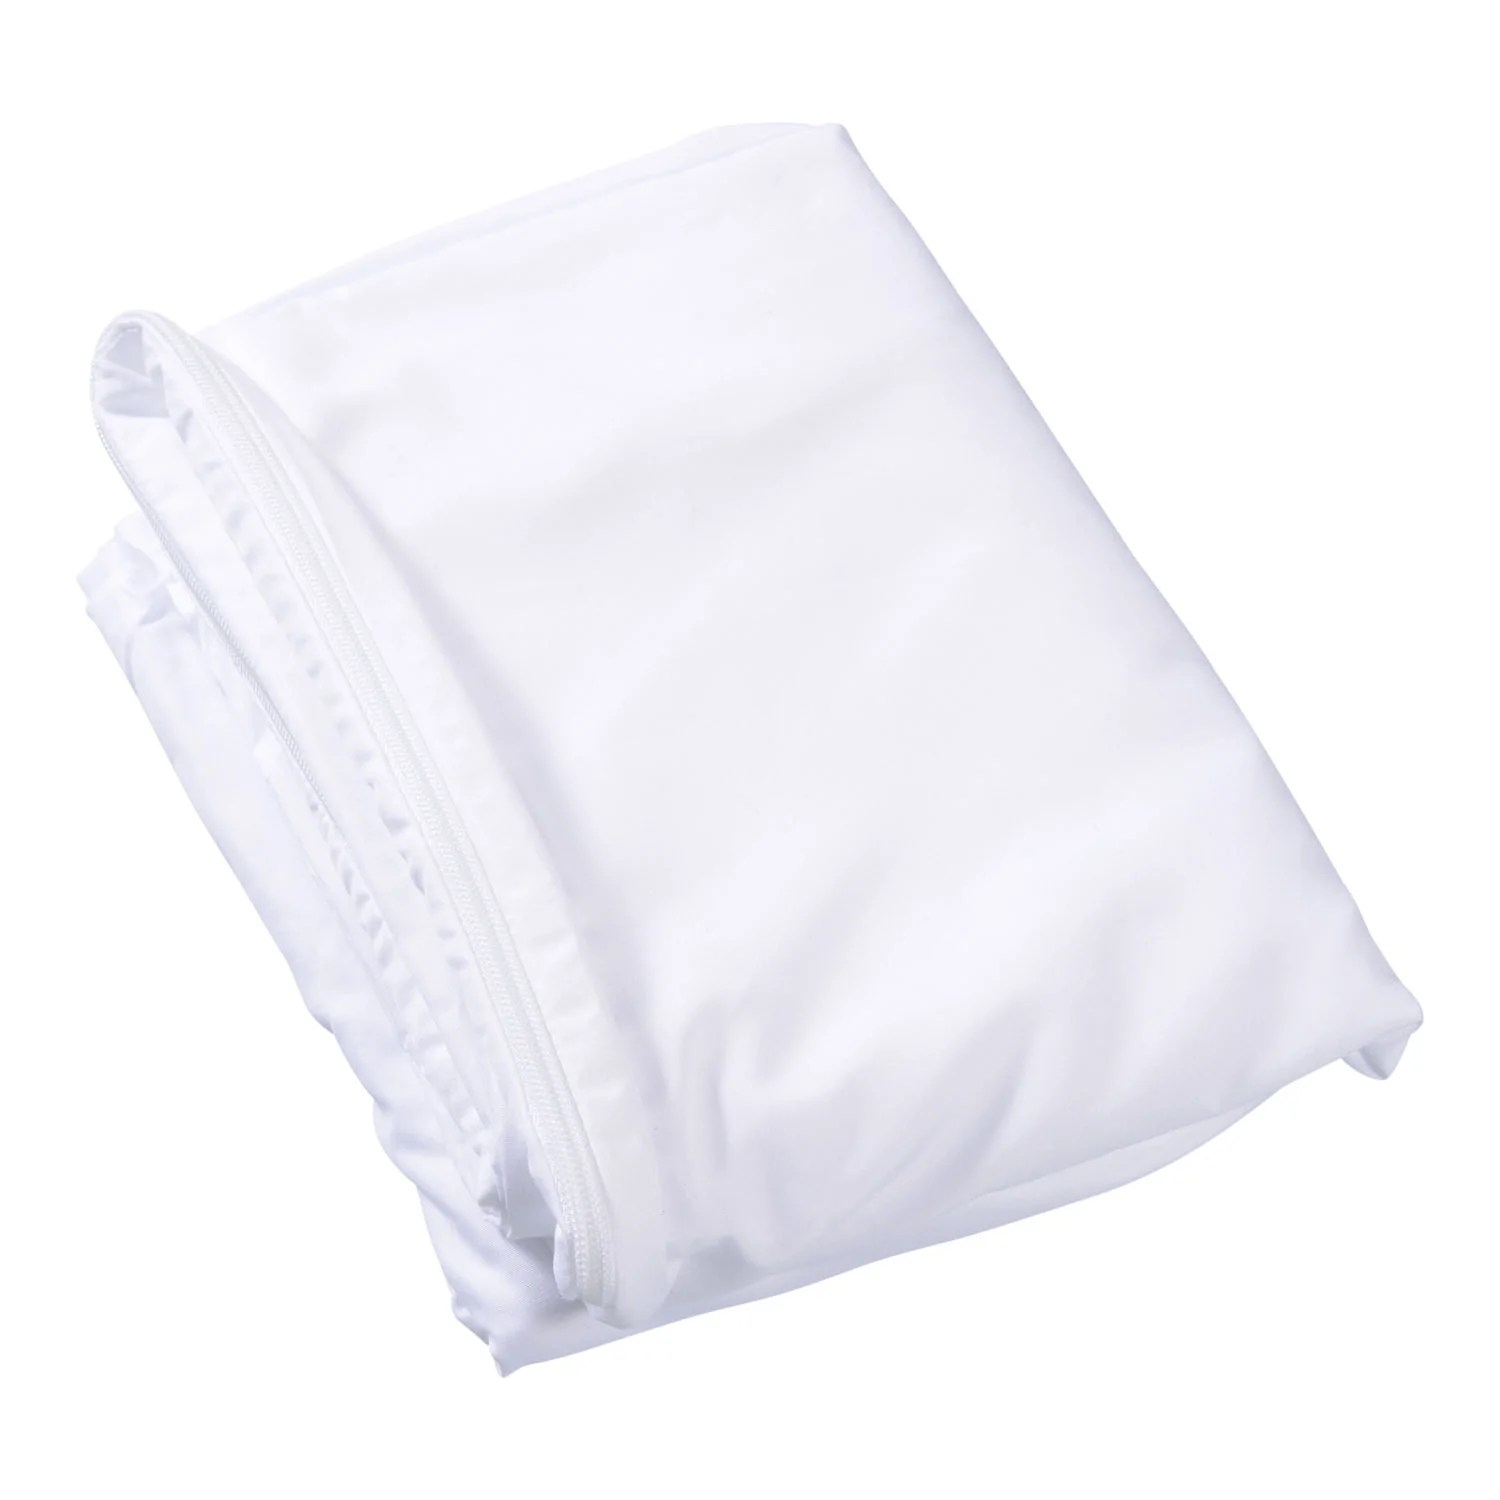 Doona Protector Quilt Doona Protector Microfibre Fabric With Zip Closure